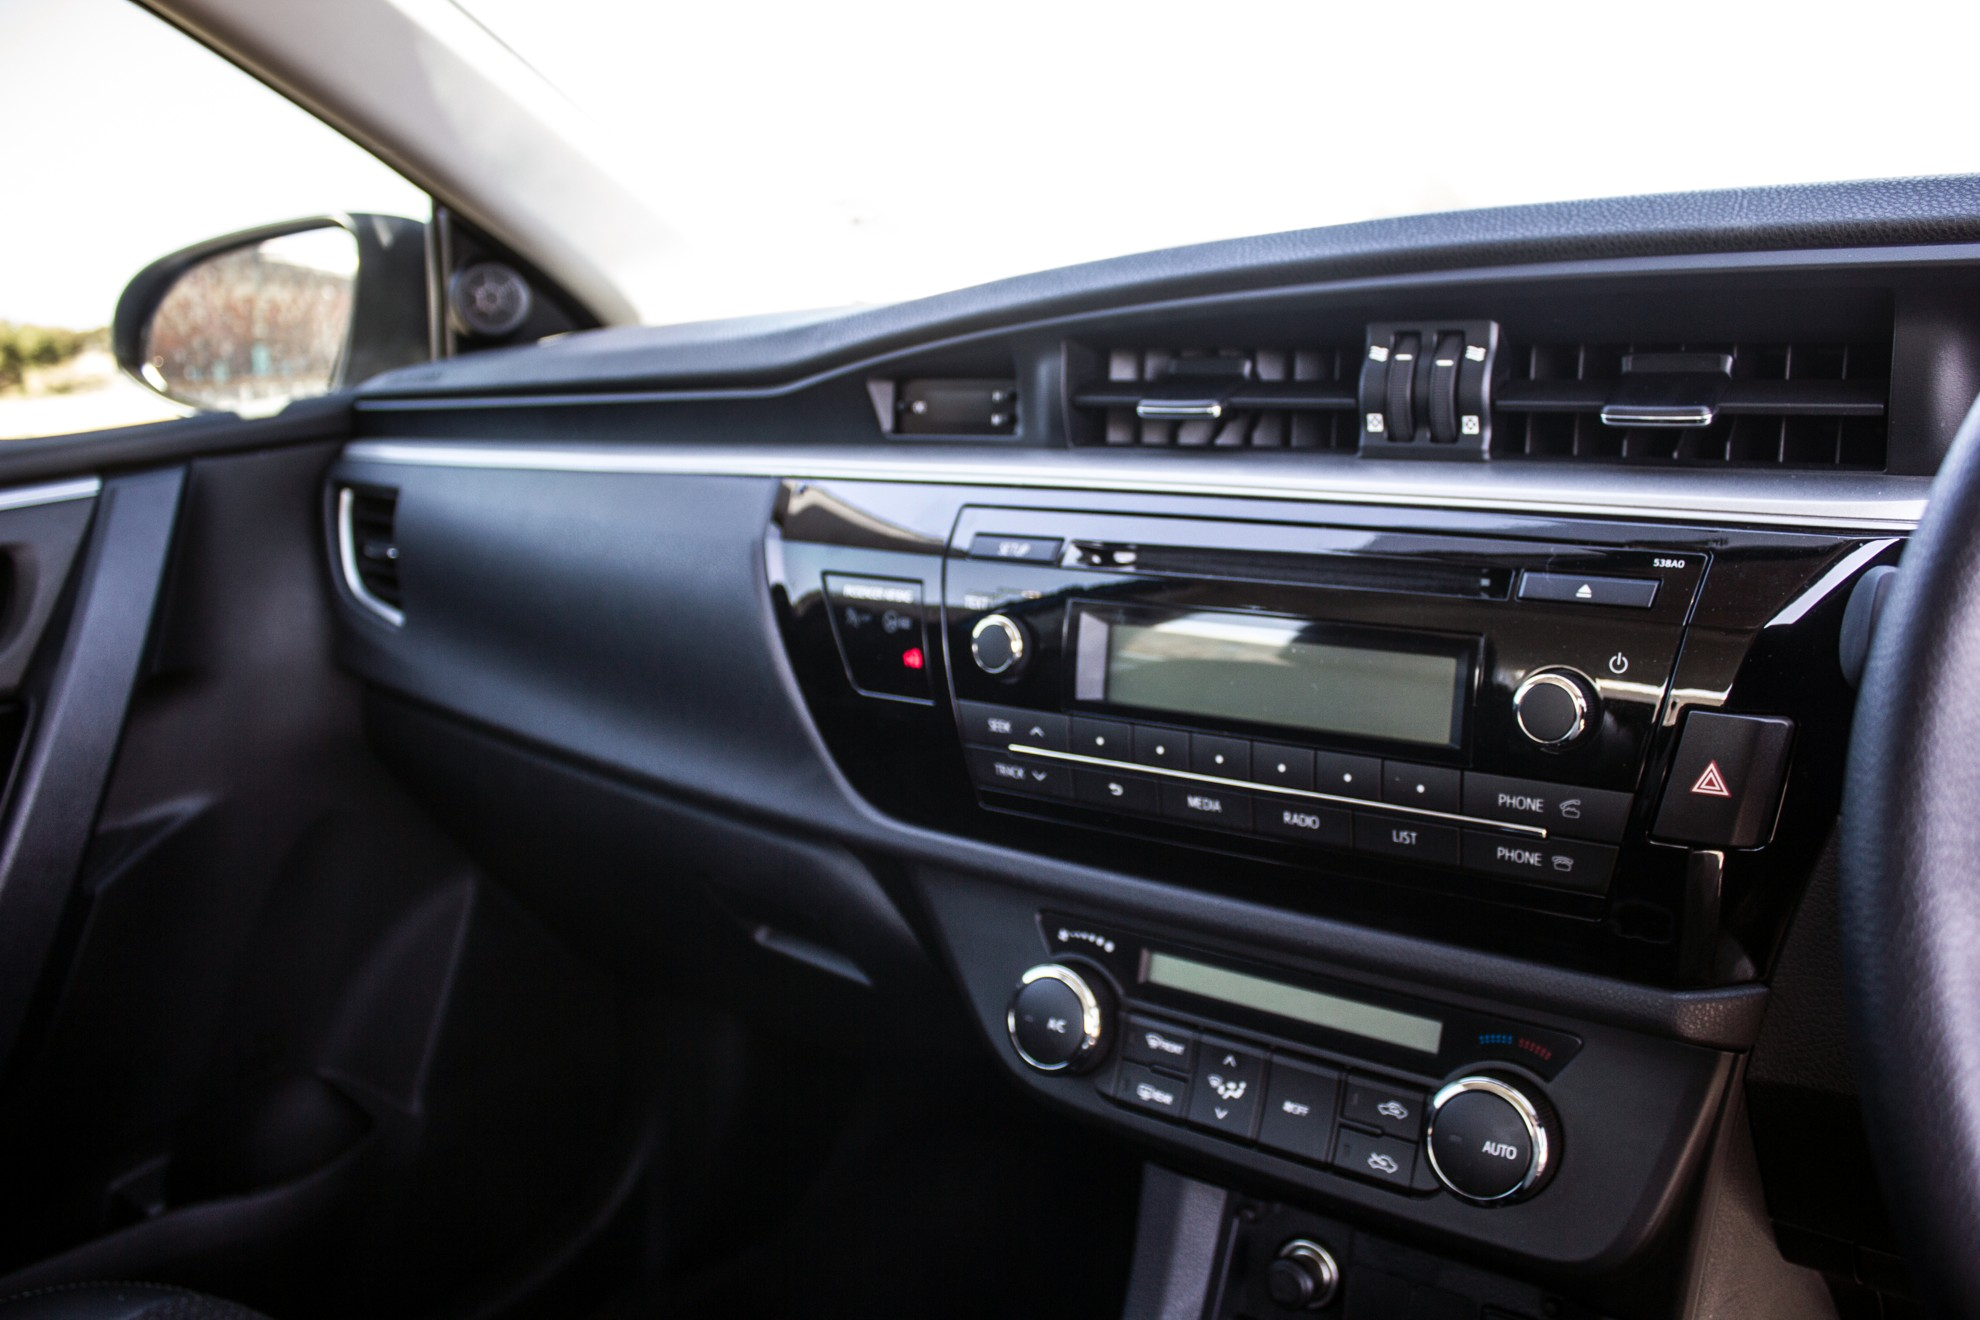 The New Toyota Corolla Sprinter Interior looks very modern and the new